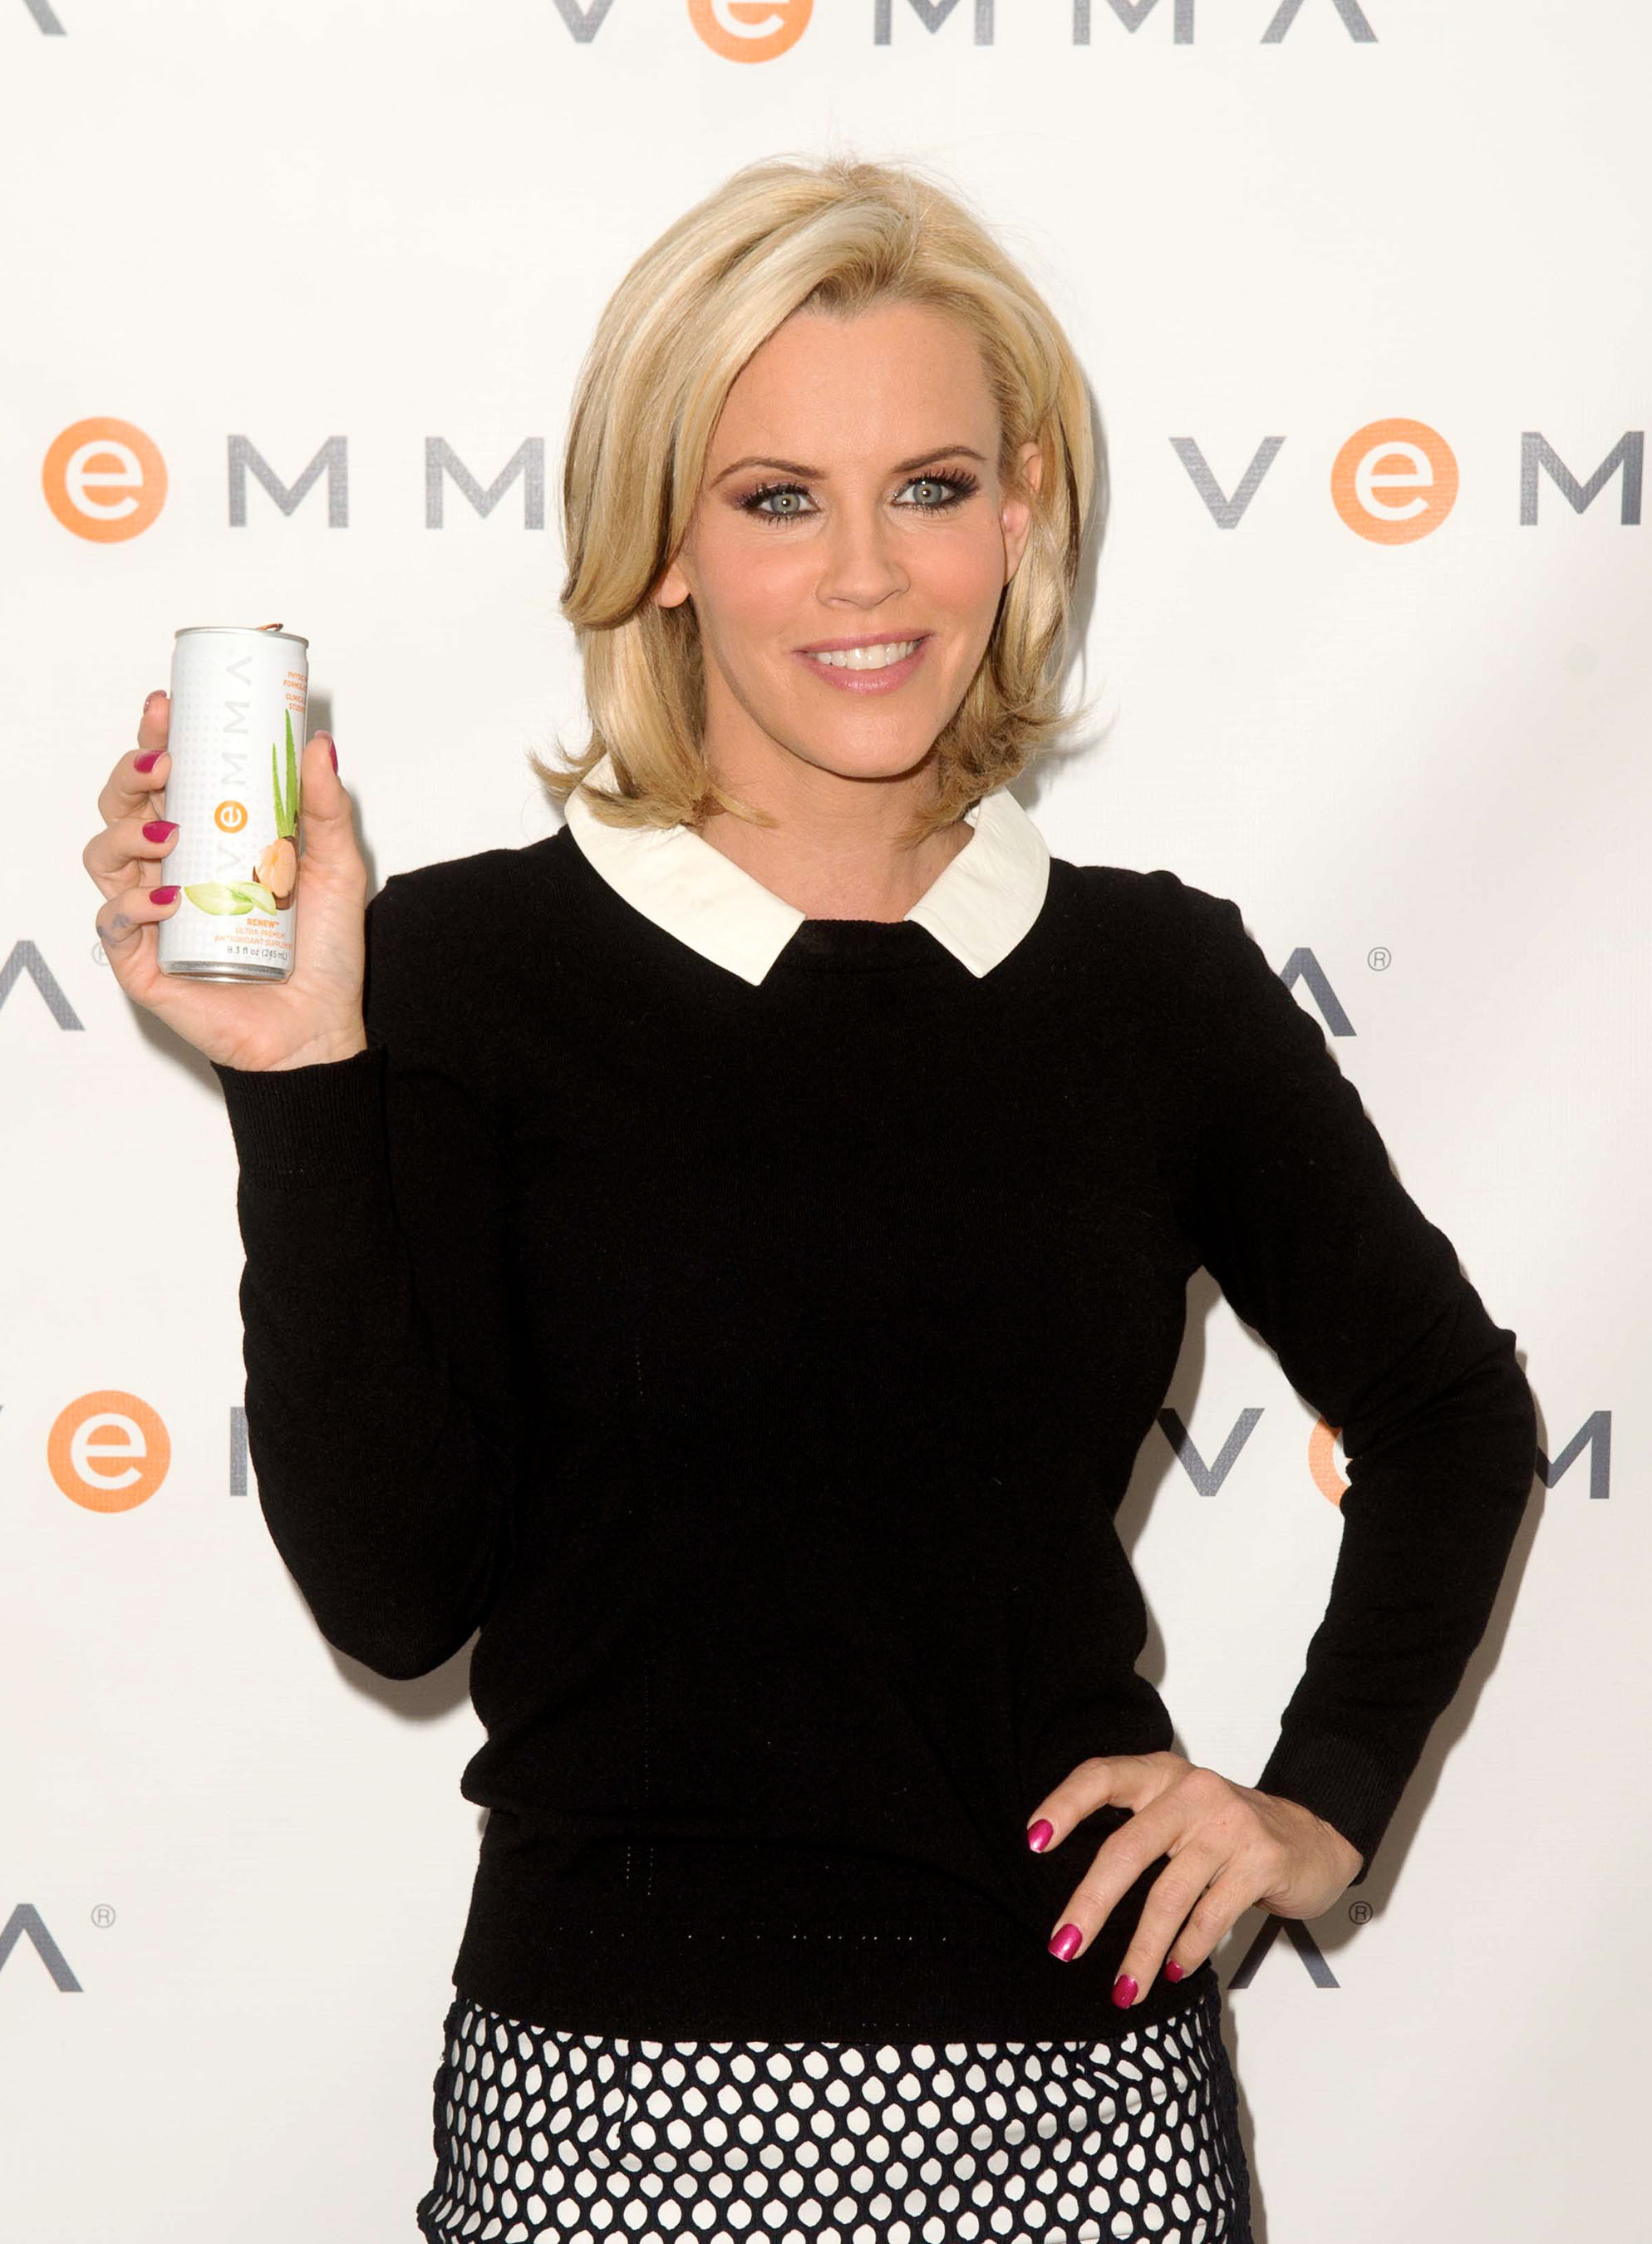 Jenny McCarthy looking beautiful with a can of Vemma Renew in hand. (PRNewsFoto/Vemma Nutrition Company) (PRNewsFoto/VEMMA NUTRITION COMPANY)